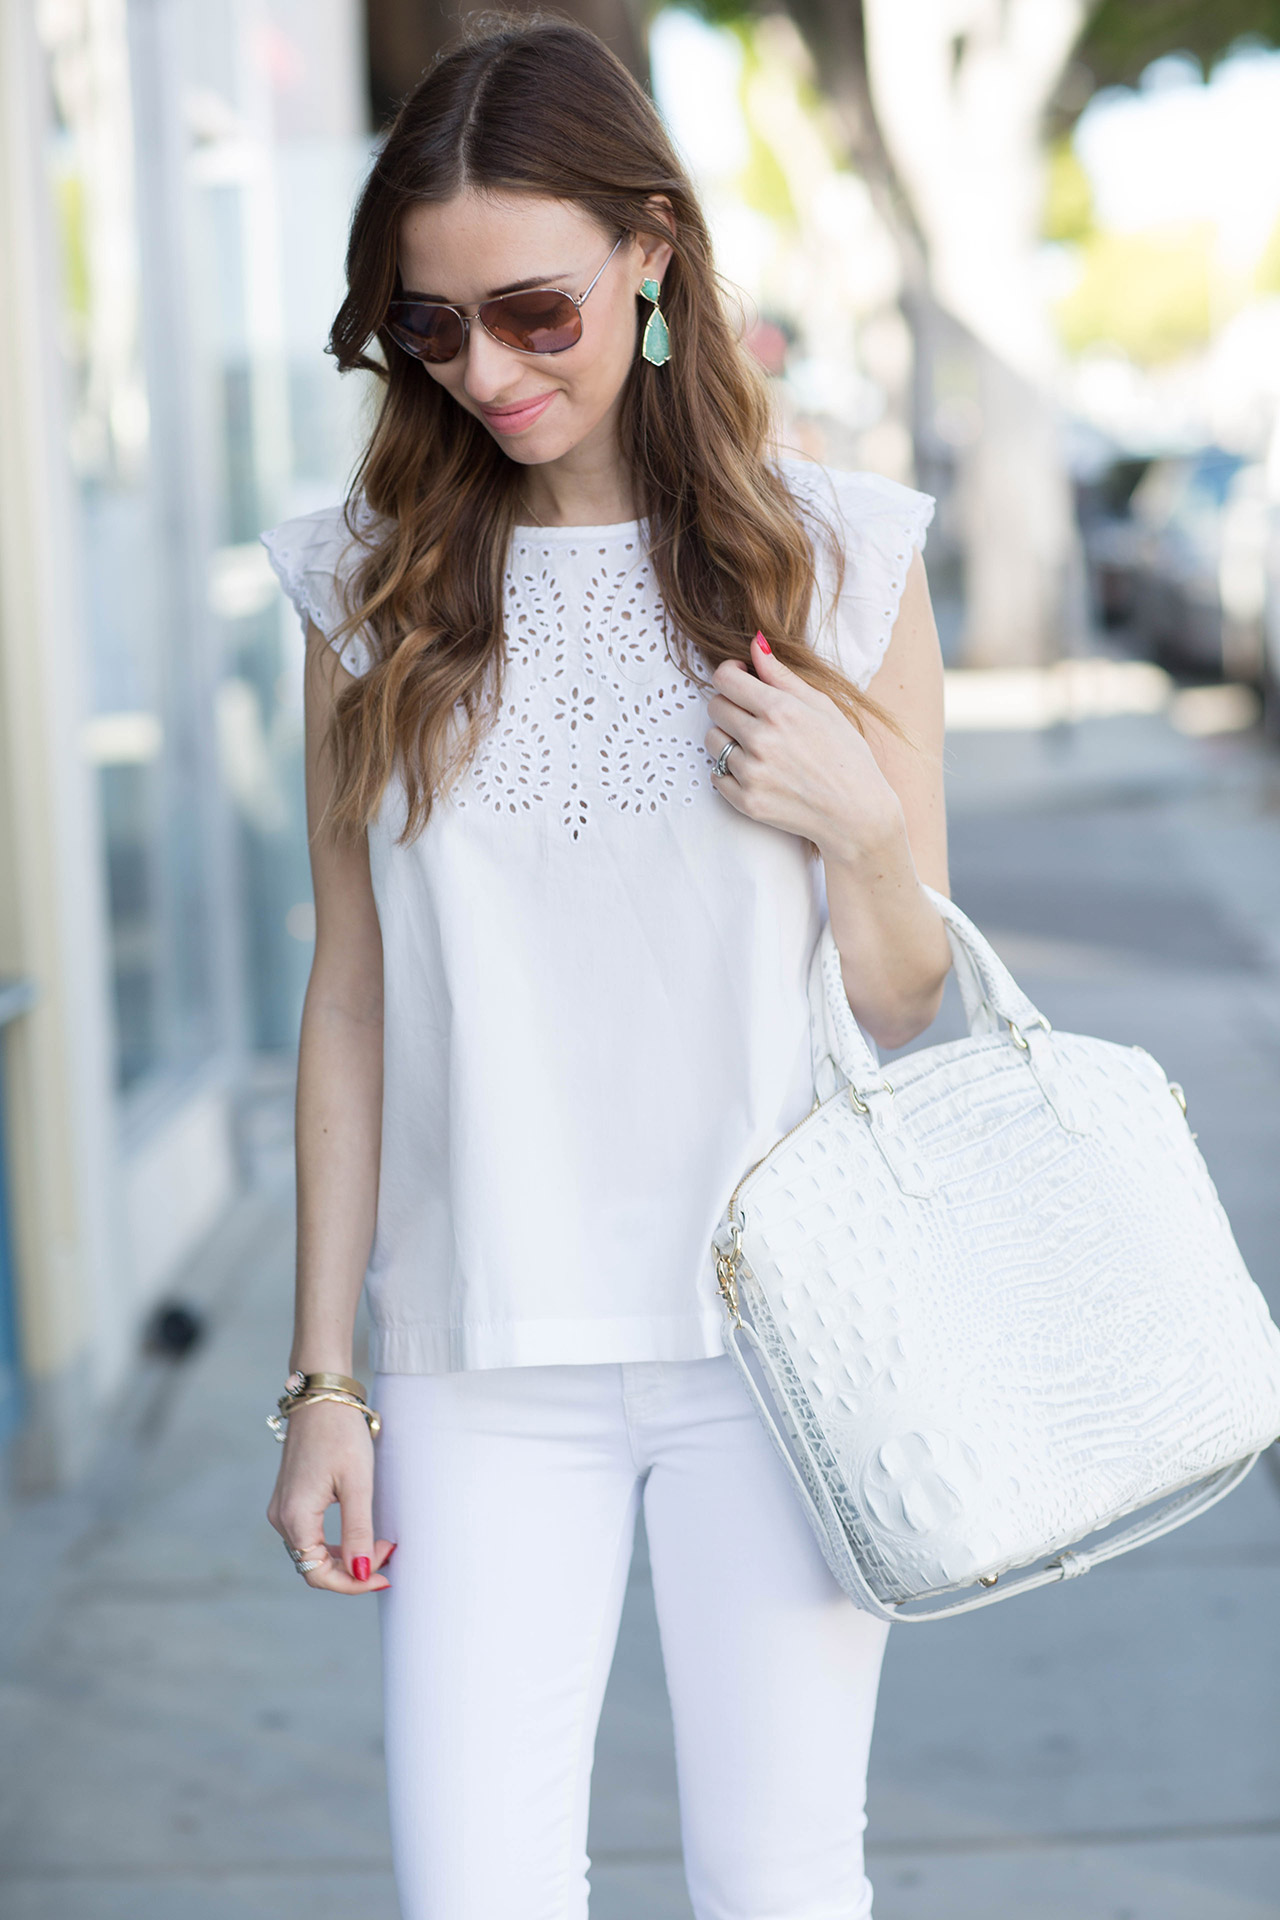 styling colorful earrings with a white outfit